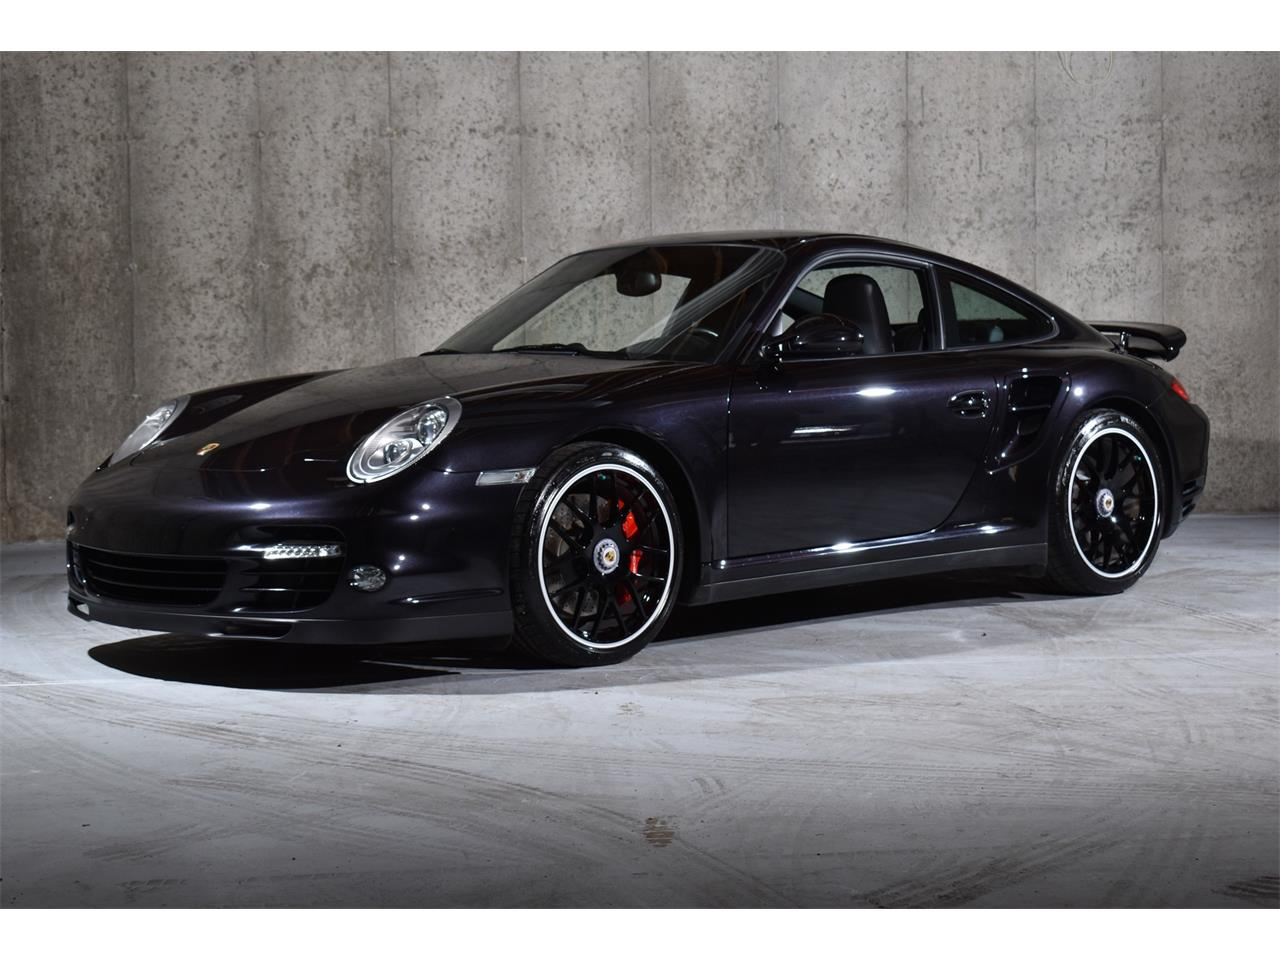 2011 Porsche 911 for sale in Valley Stream, NY – photo 7